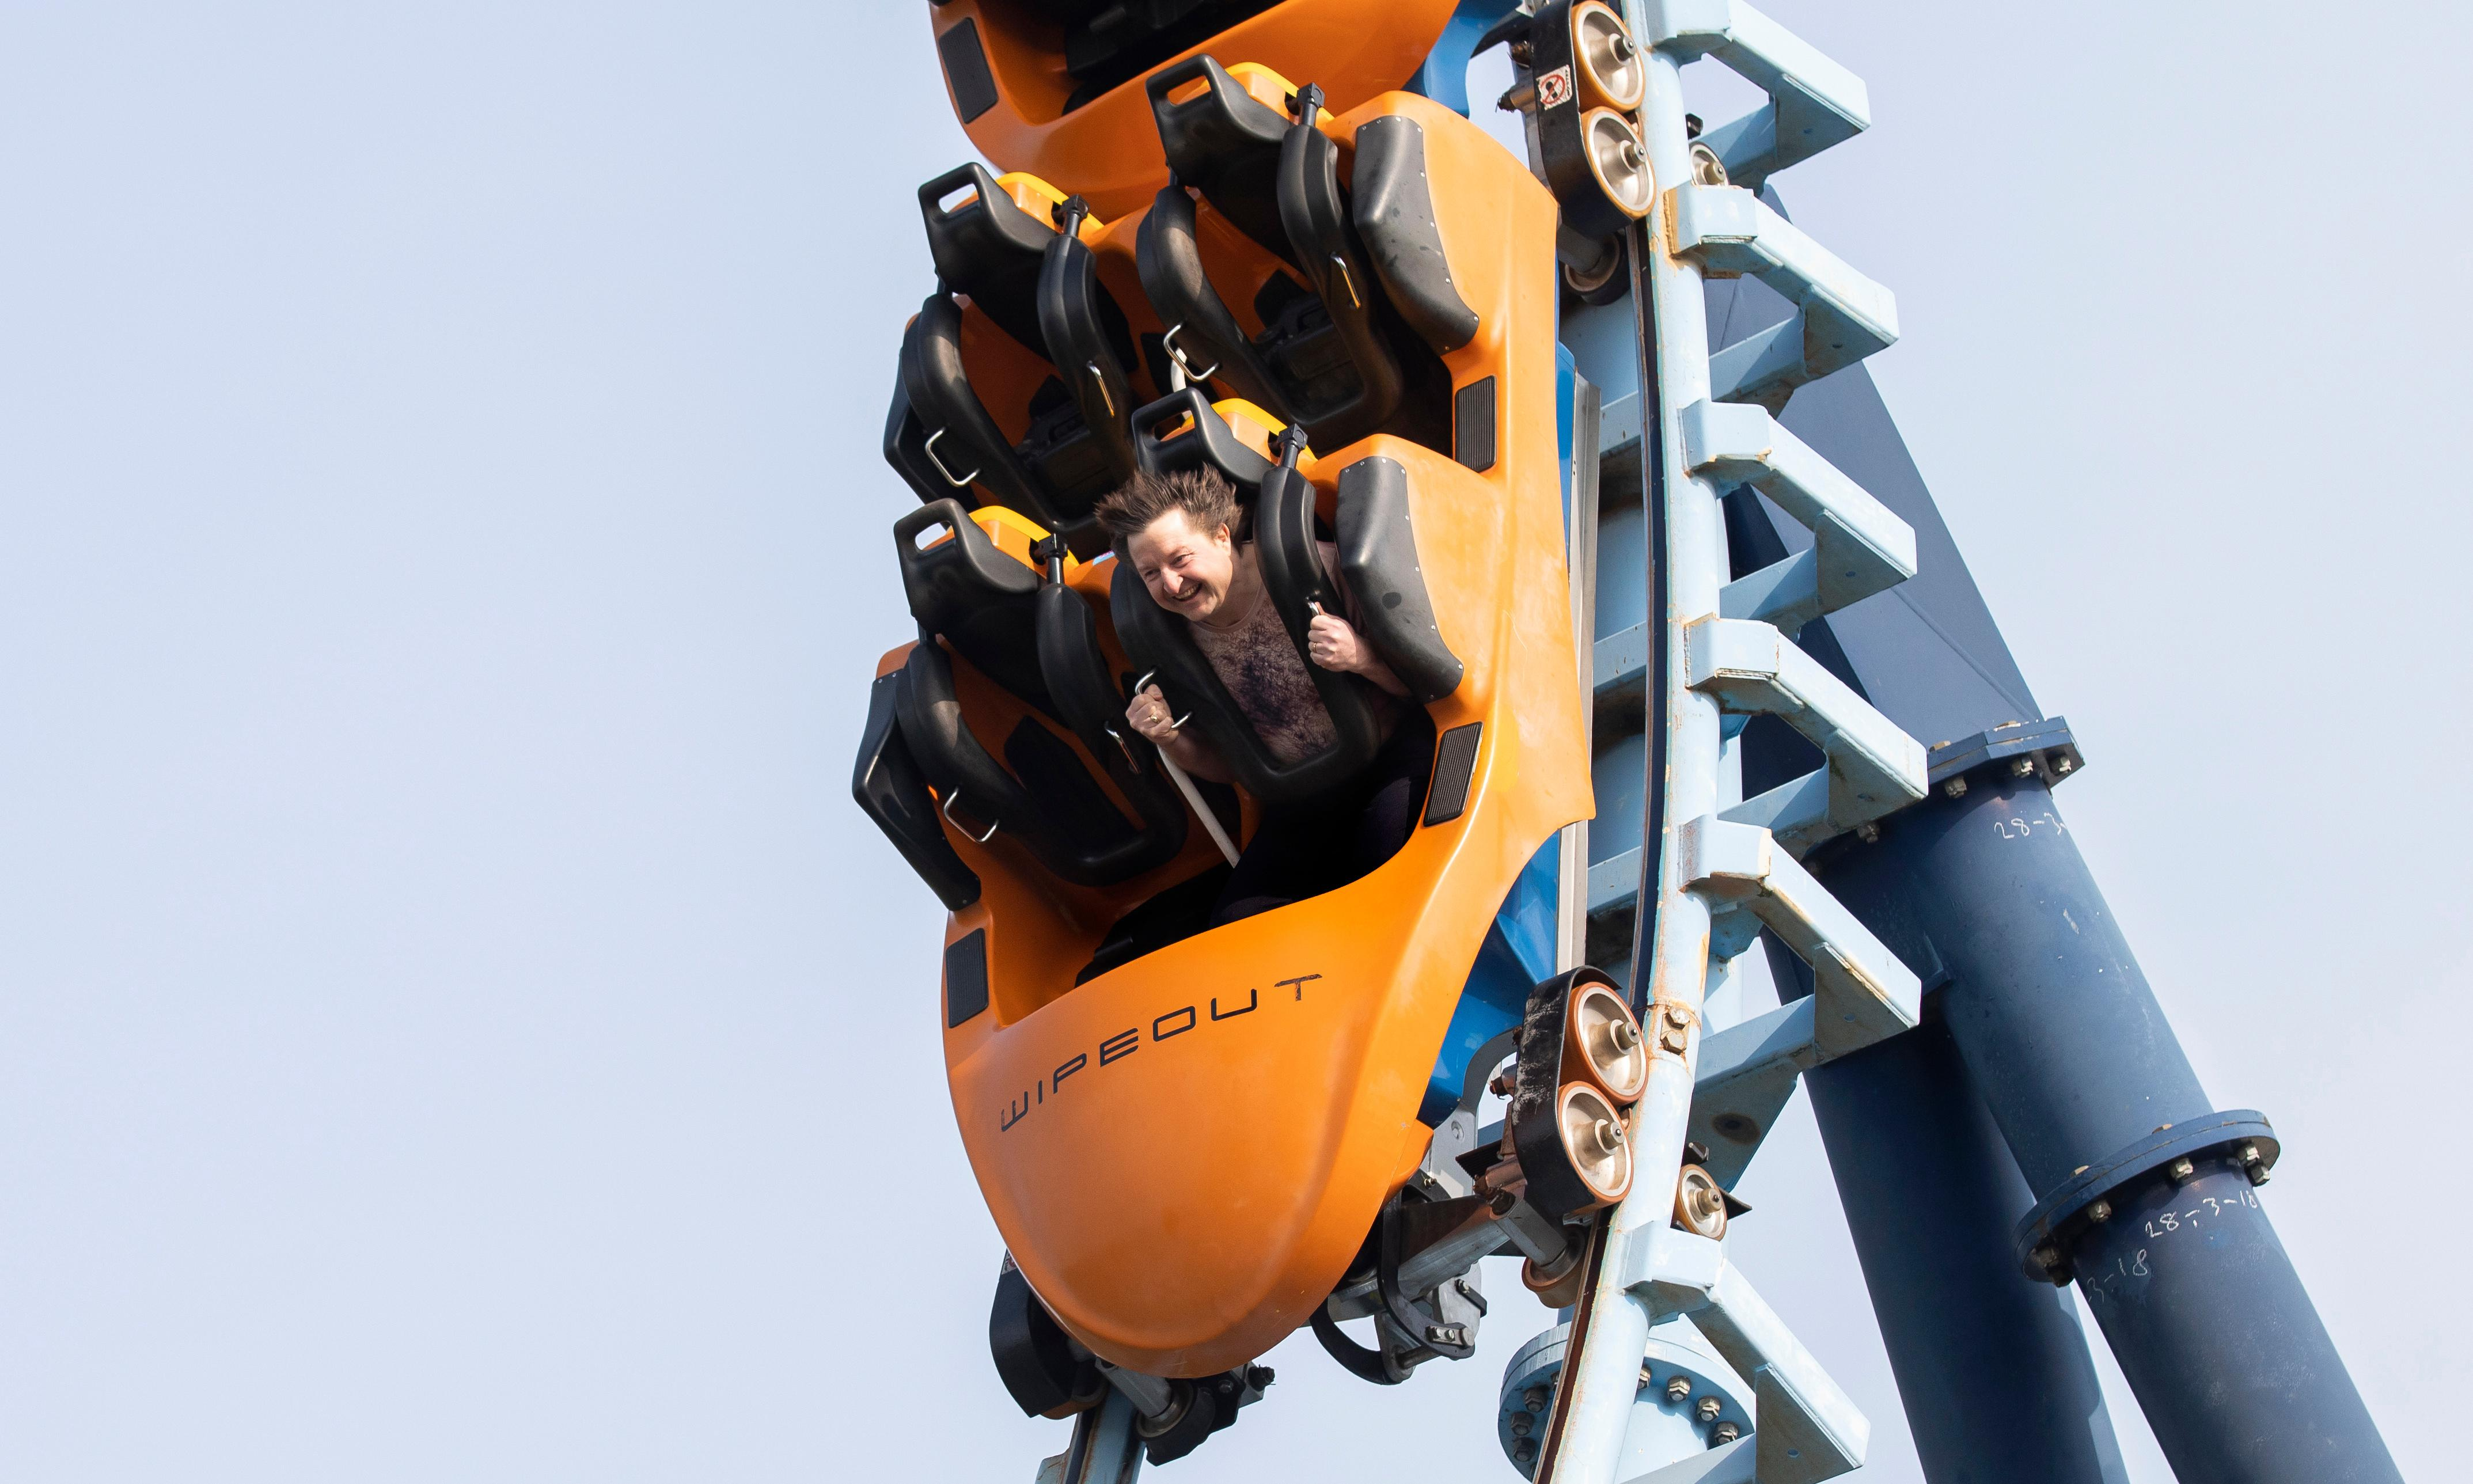 Experience: I am a naked rollercoaster rider